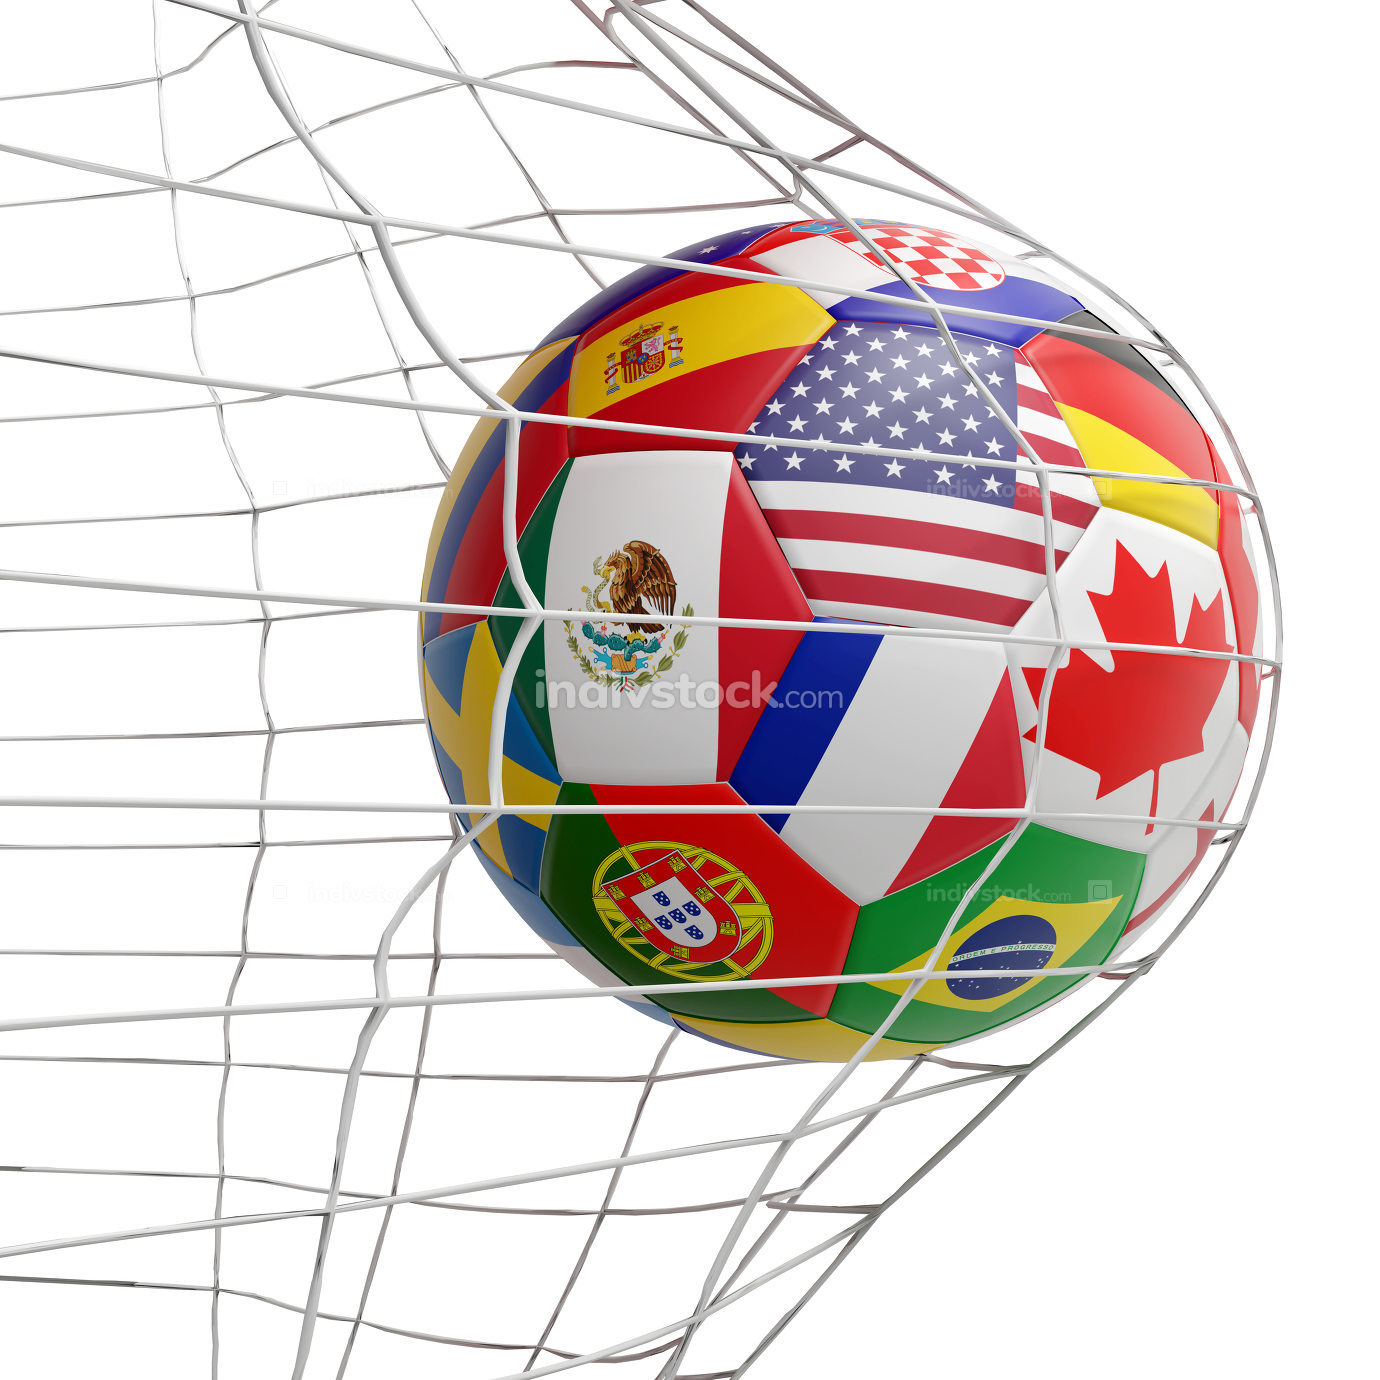 free download: Mexico America Canada flags ball 3d-illustration